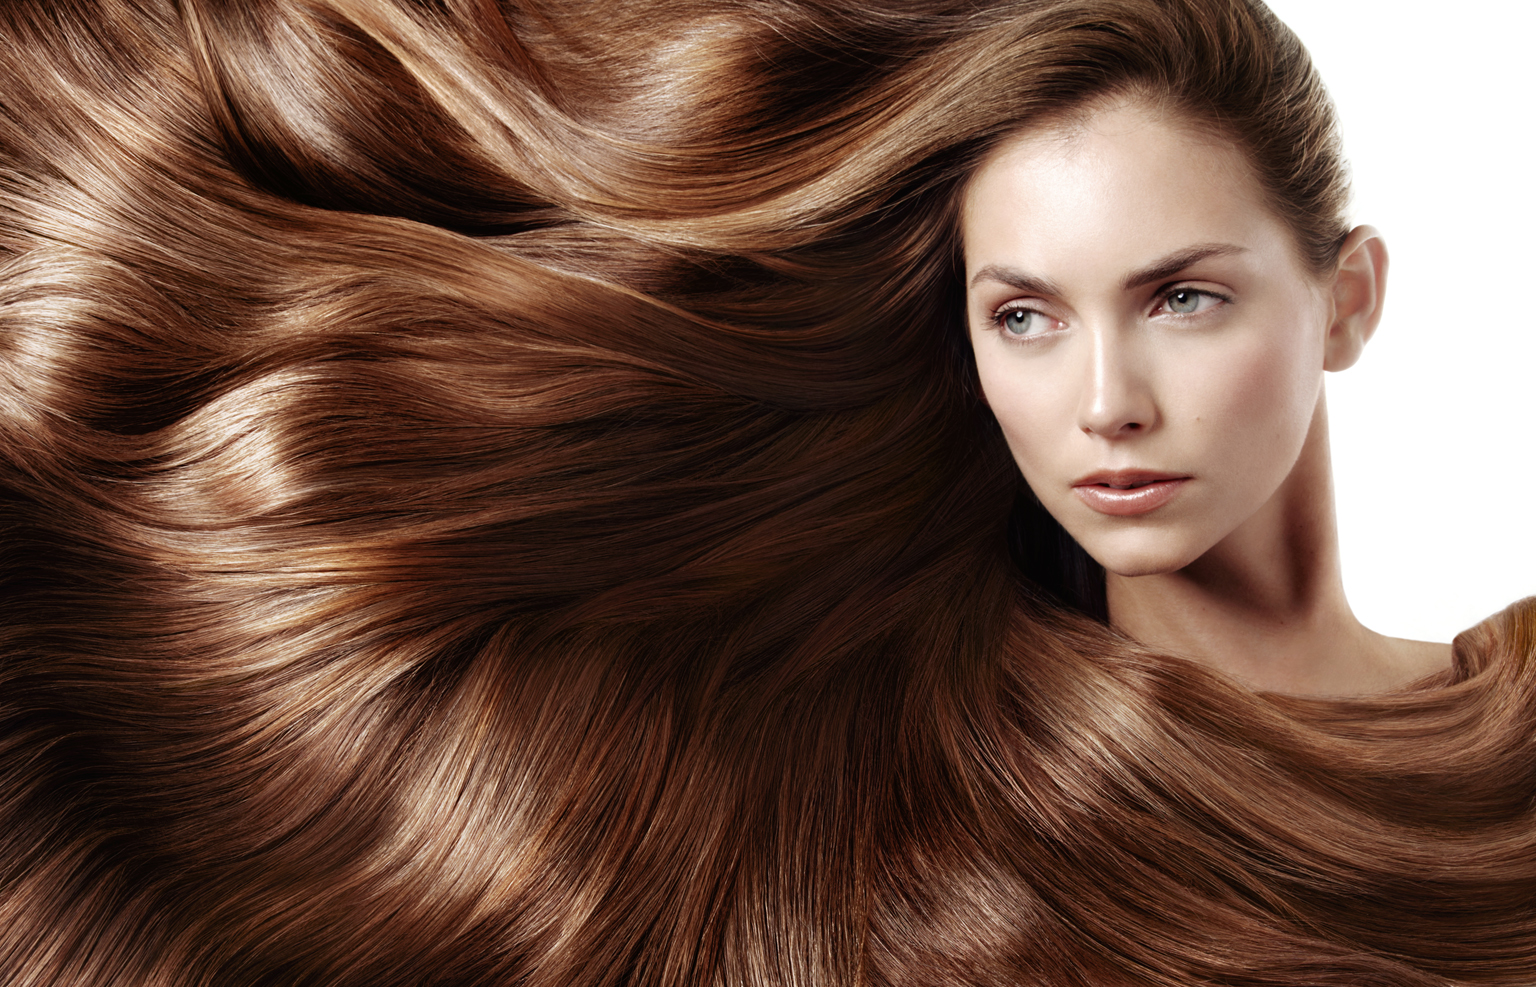 Natural 5 Ways to Protect Hairs